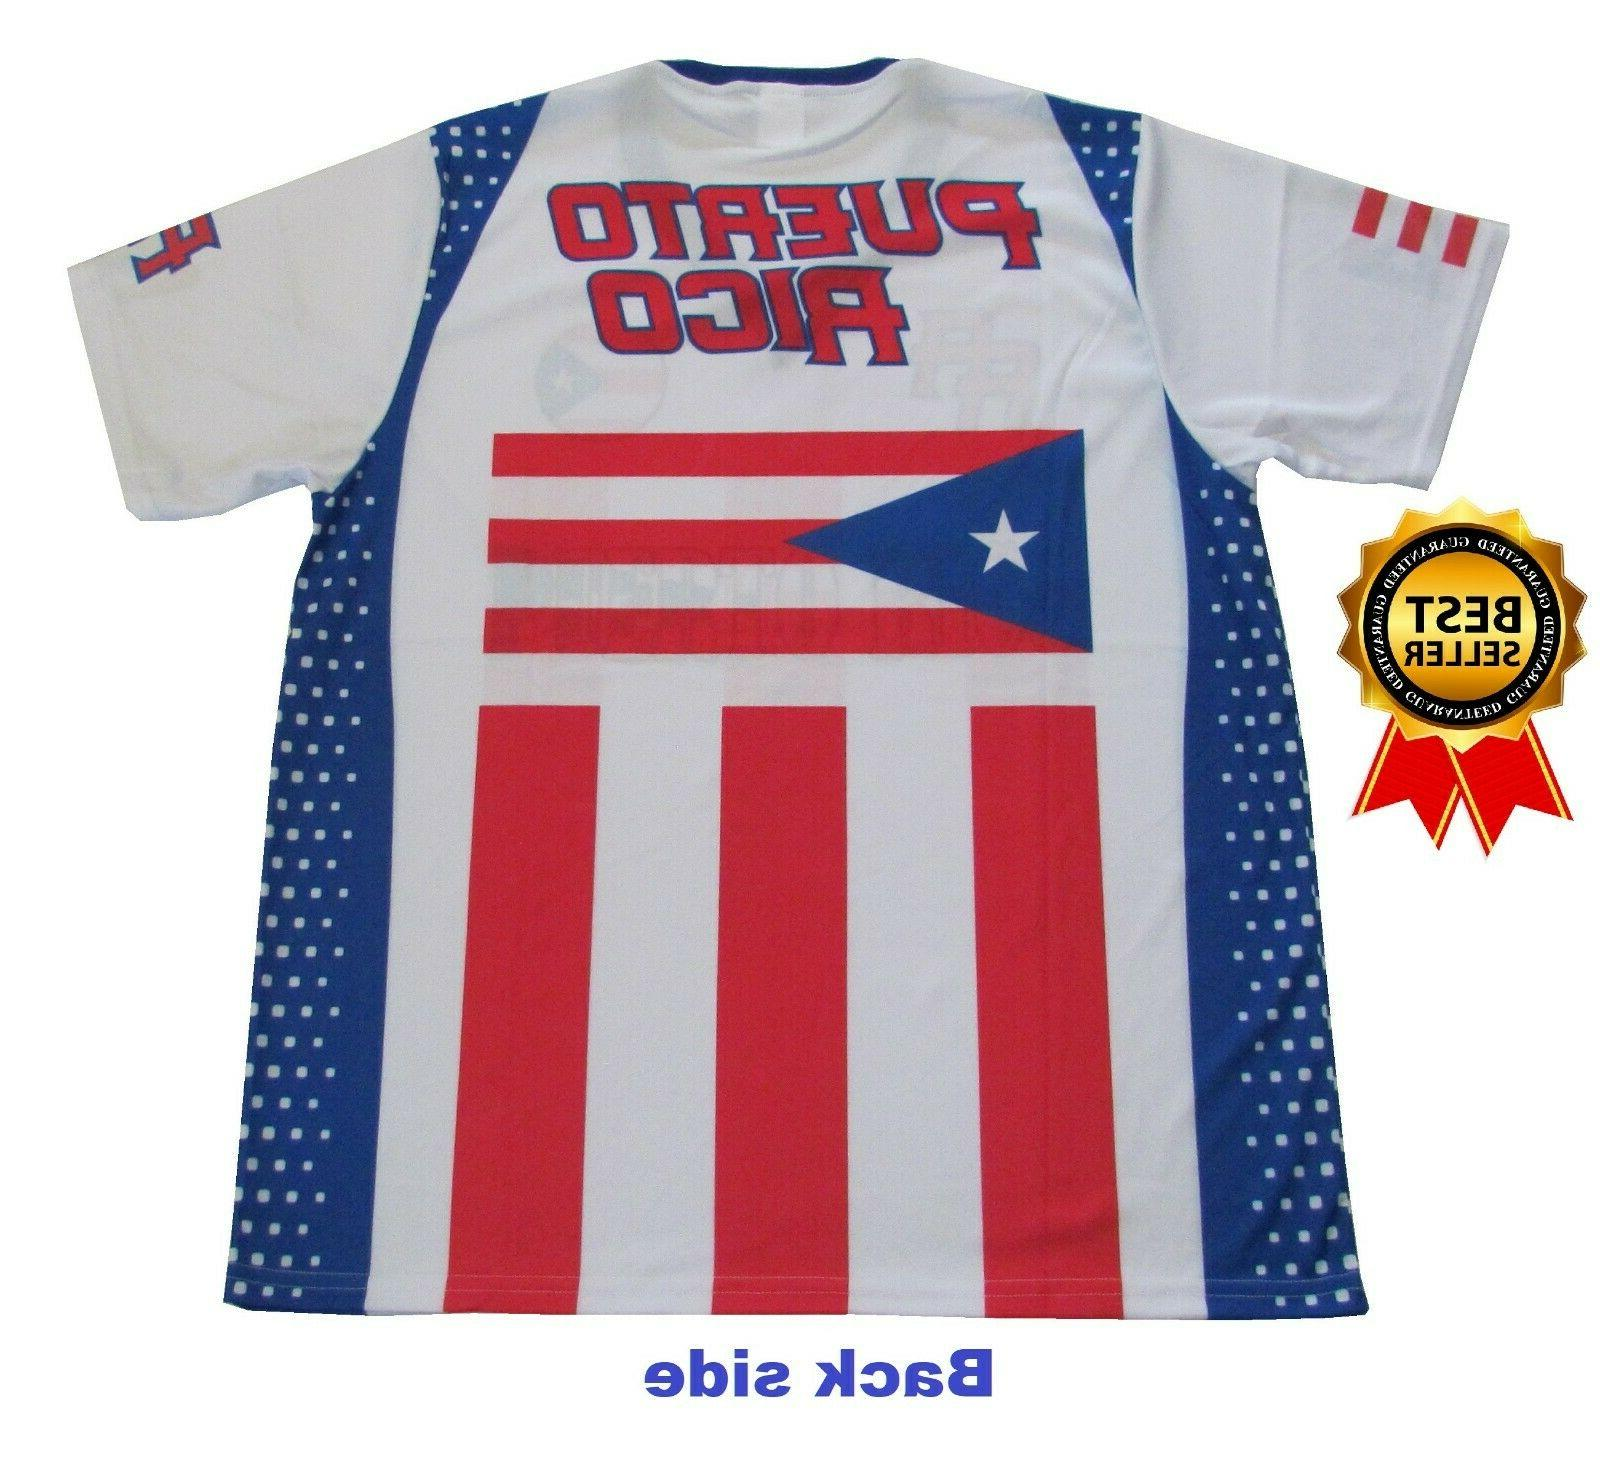 PUERTO SOCCER SHORT SLEEVE SUBLIMATION OVER